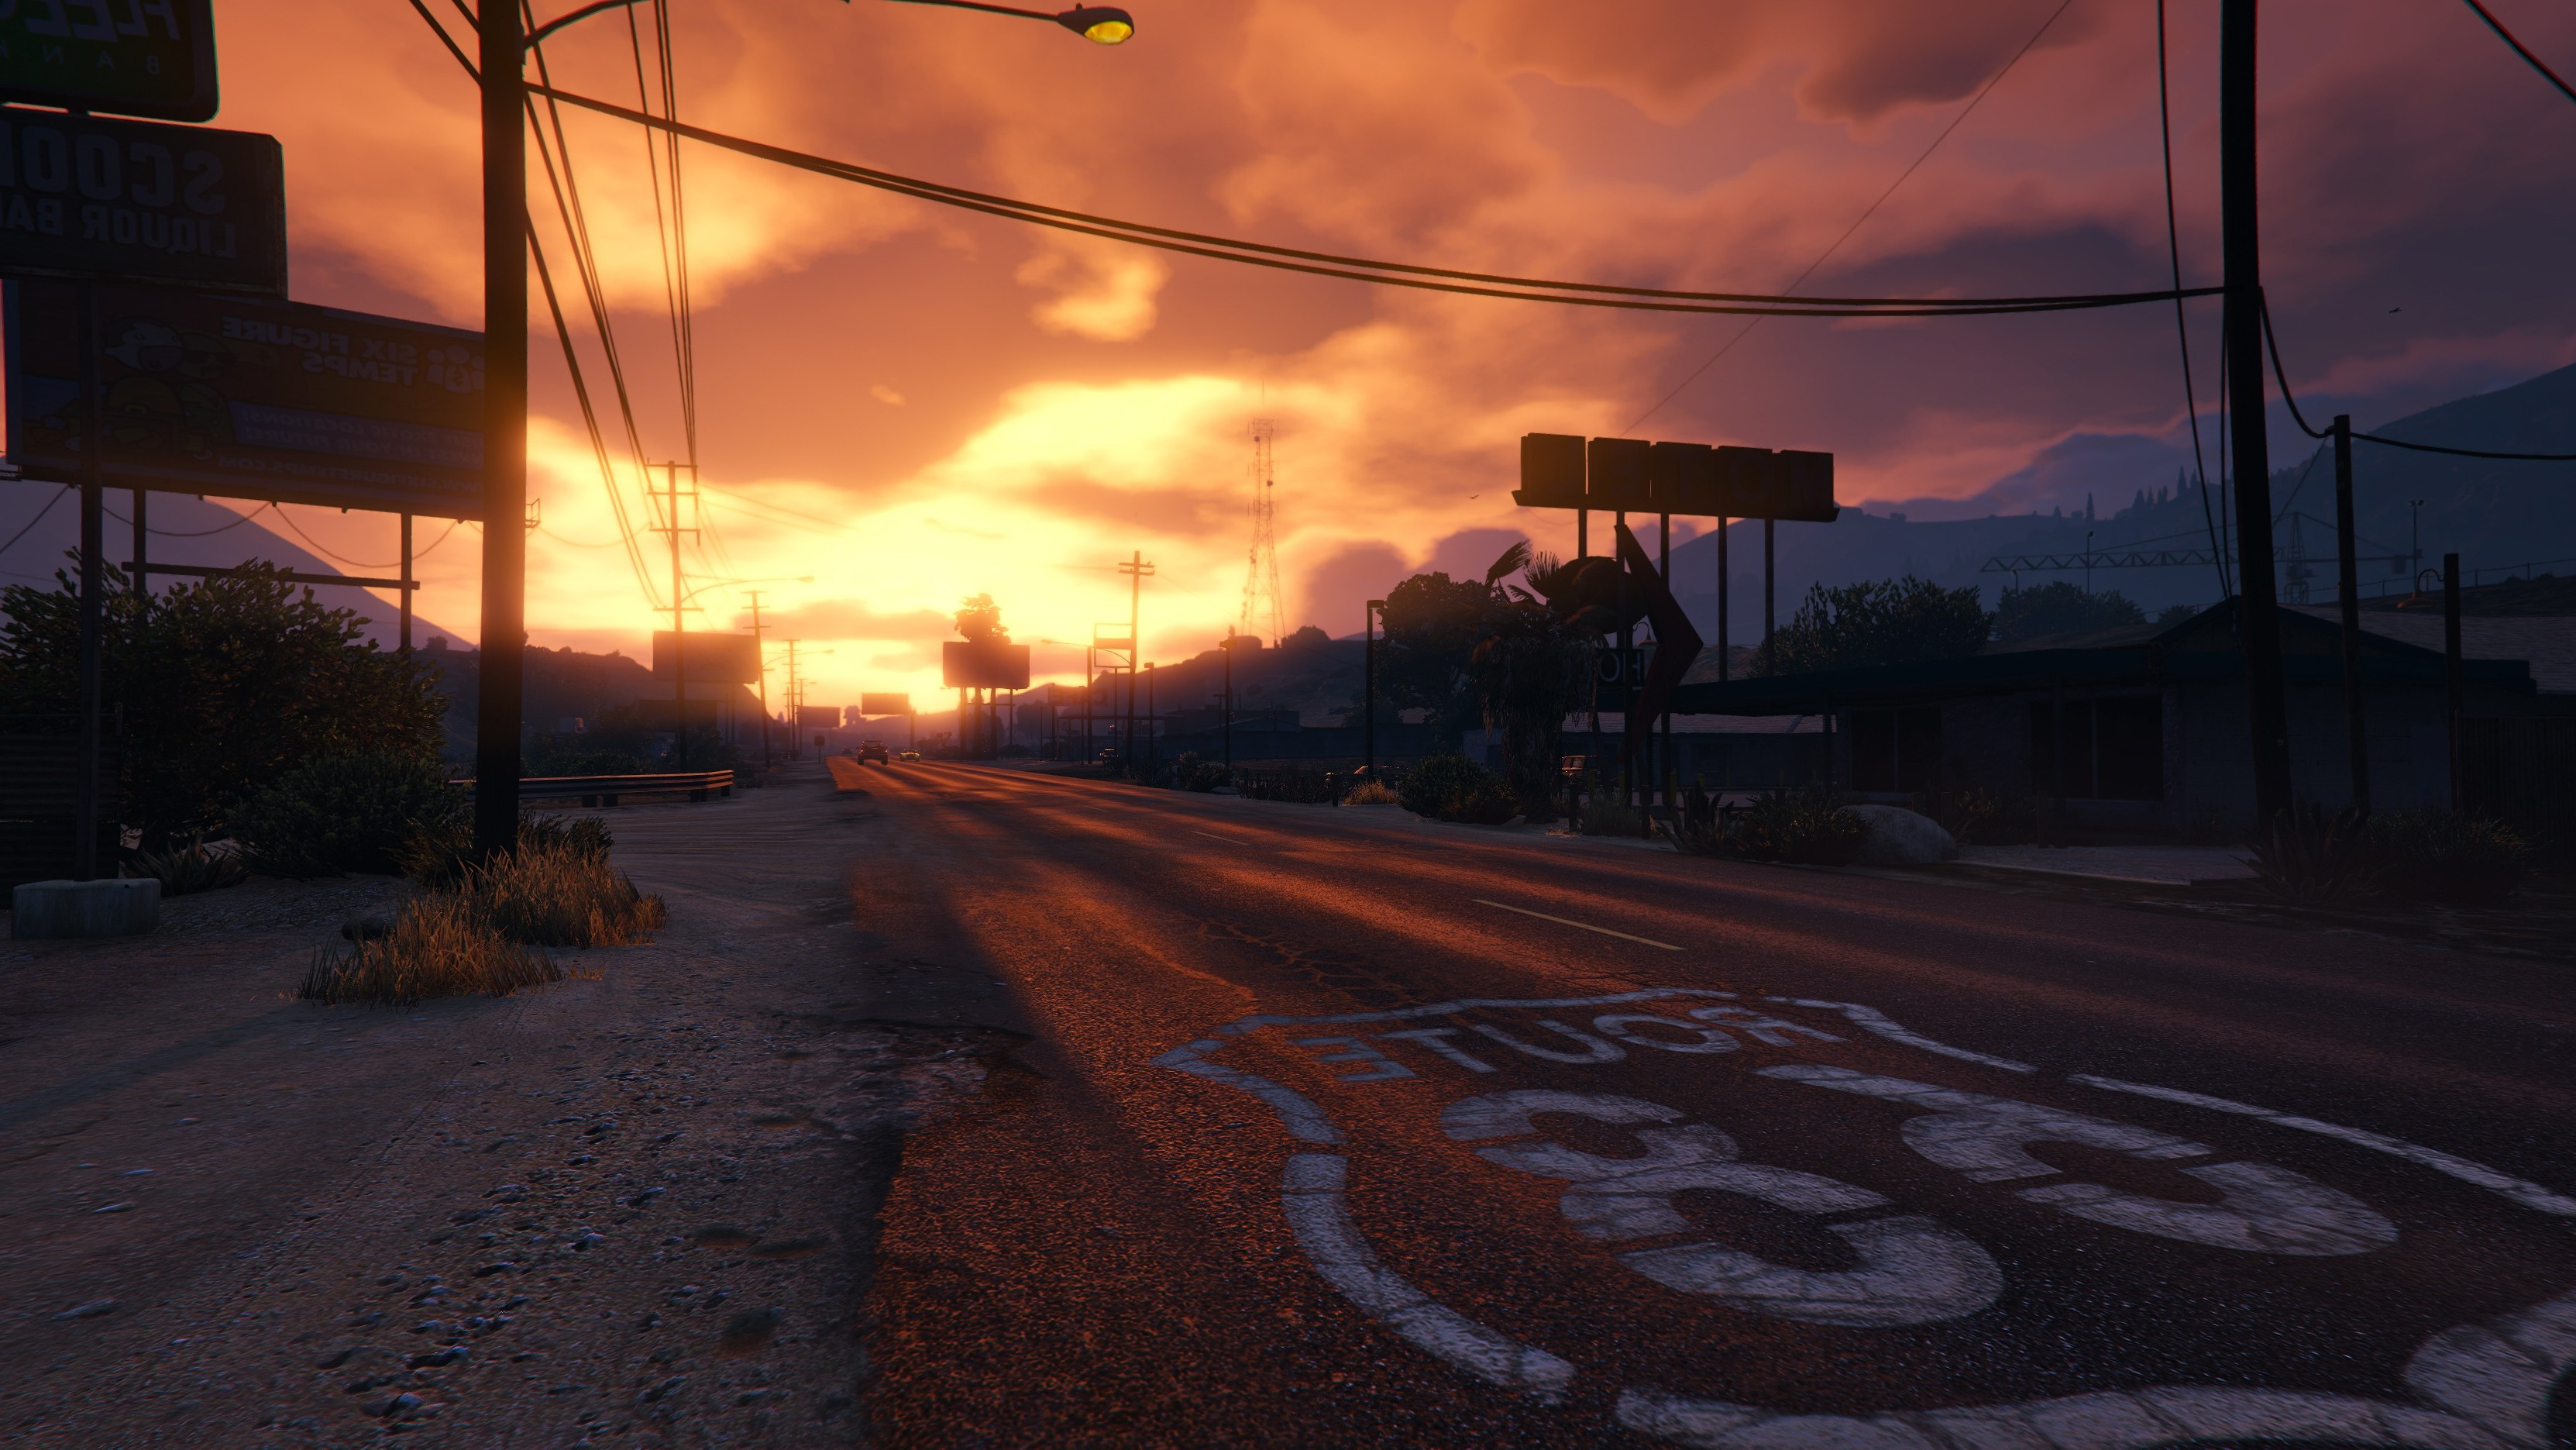 2048x1152 Gta V Redux Nature 2048x1152 Resolution Hd 4k: GTA 5 Sunset, HD Games, 4k Wallpapers, Images, Backgrounds